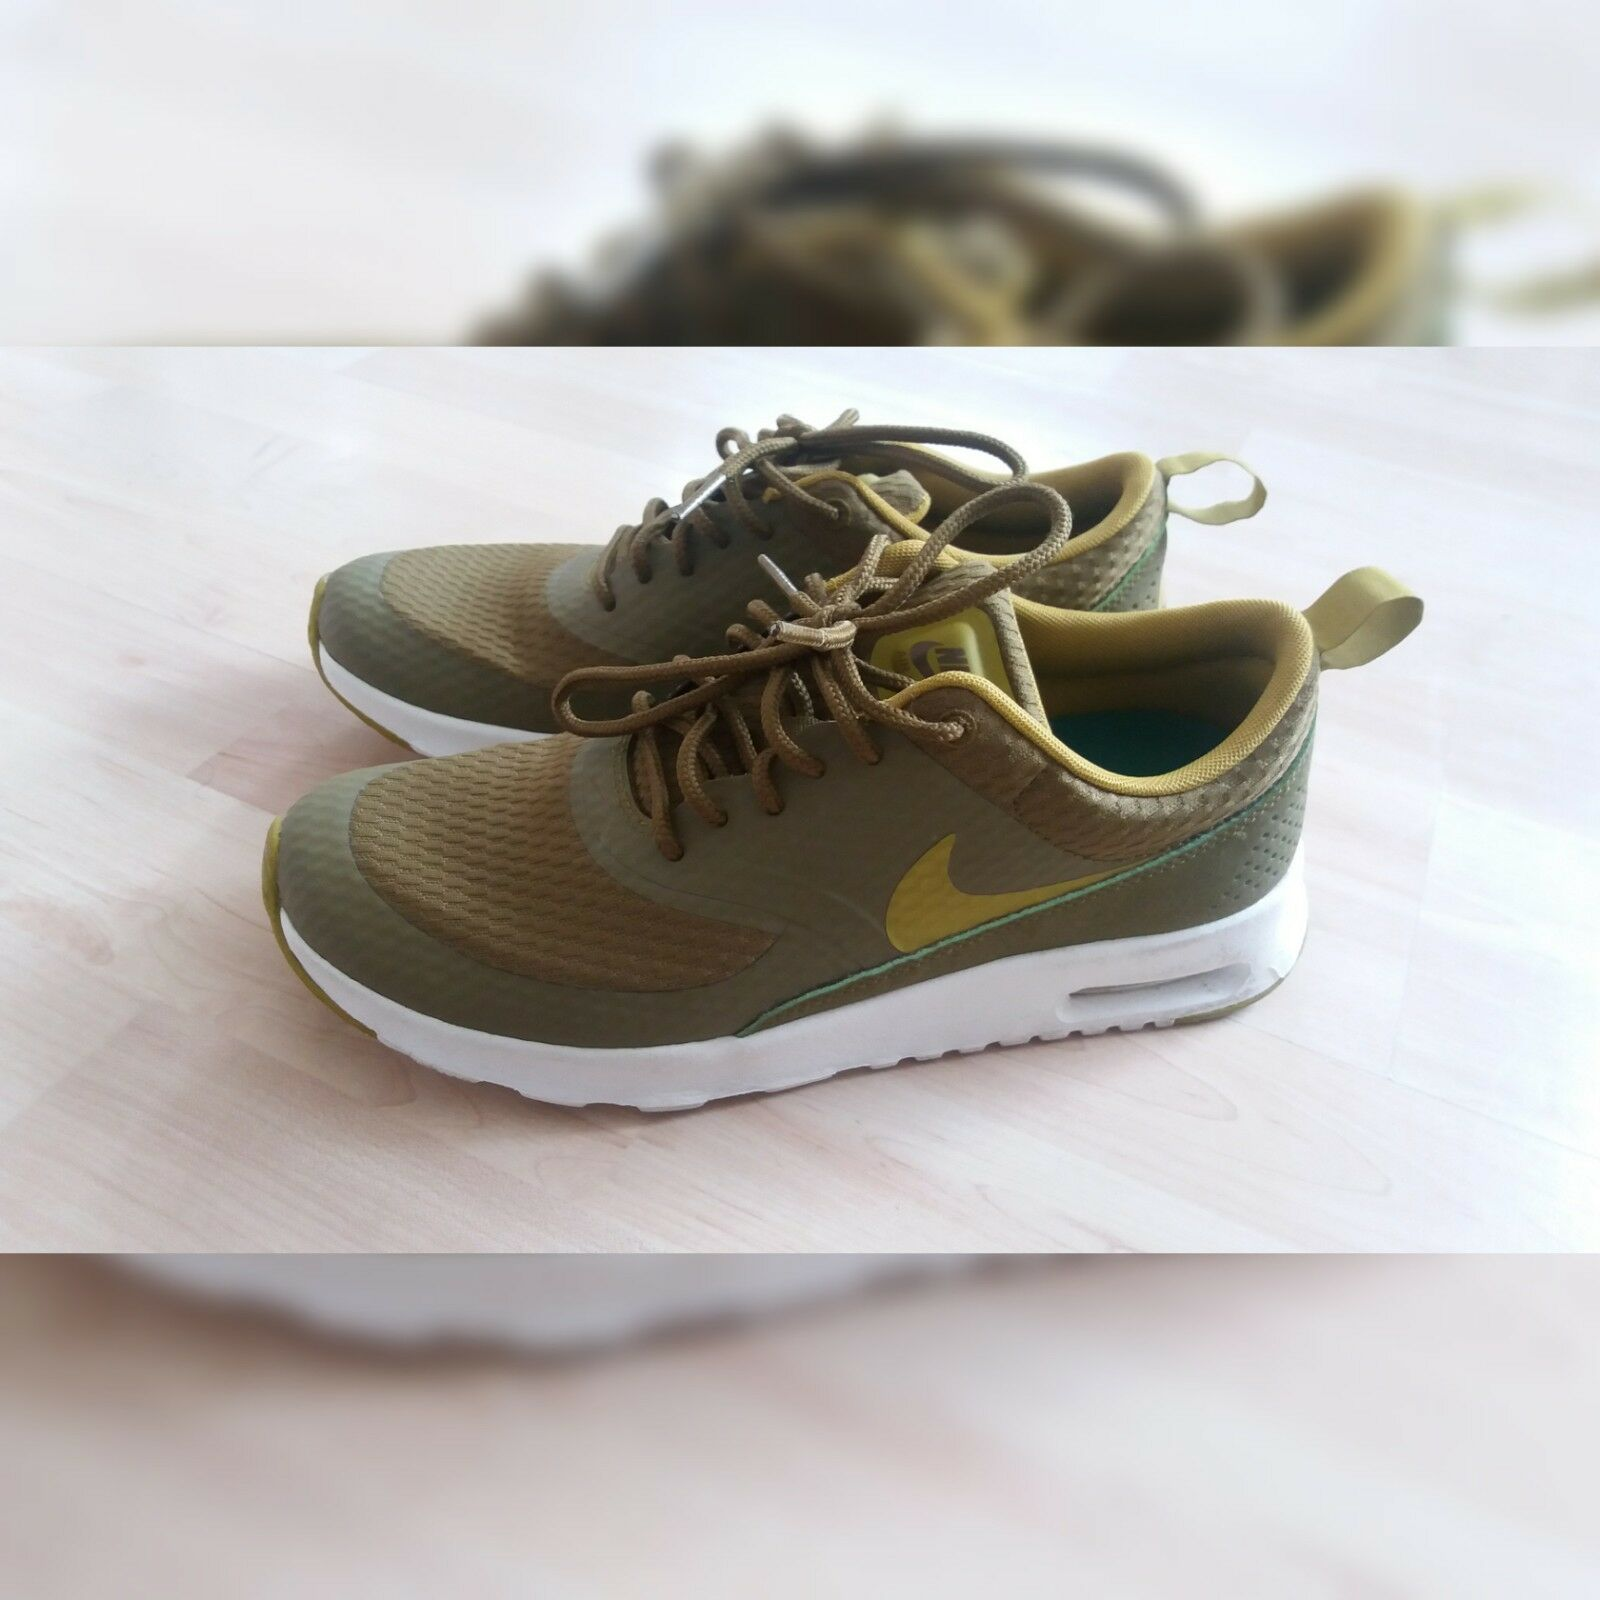 woman NIKE trainers Olive size 4UK Seasonal price cuts, discount benefits